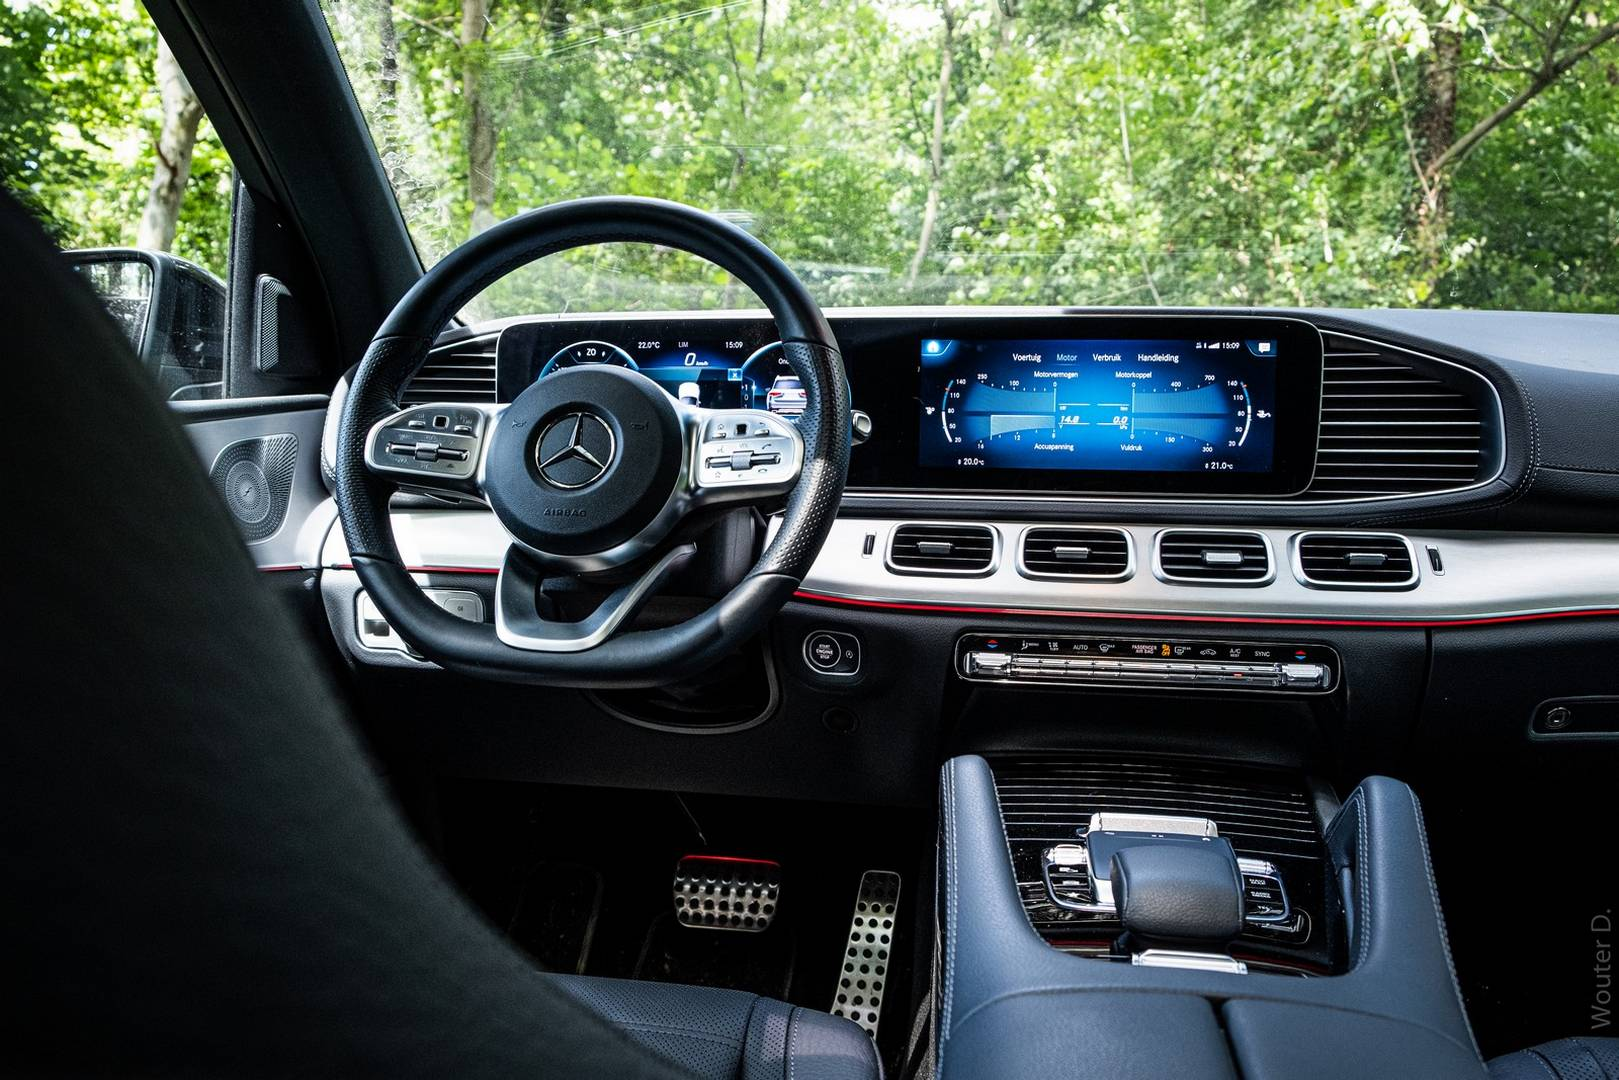 Mercedes-Benz GLS 400d Cockpit